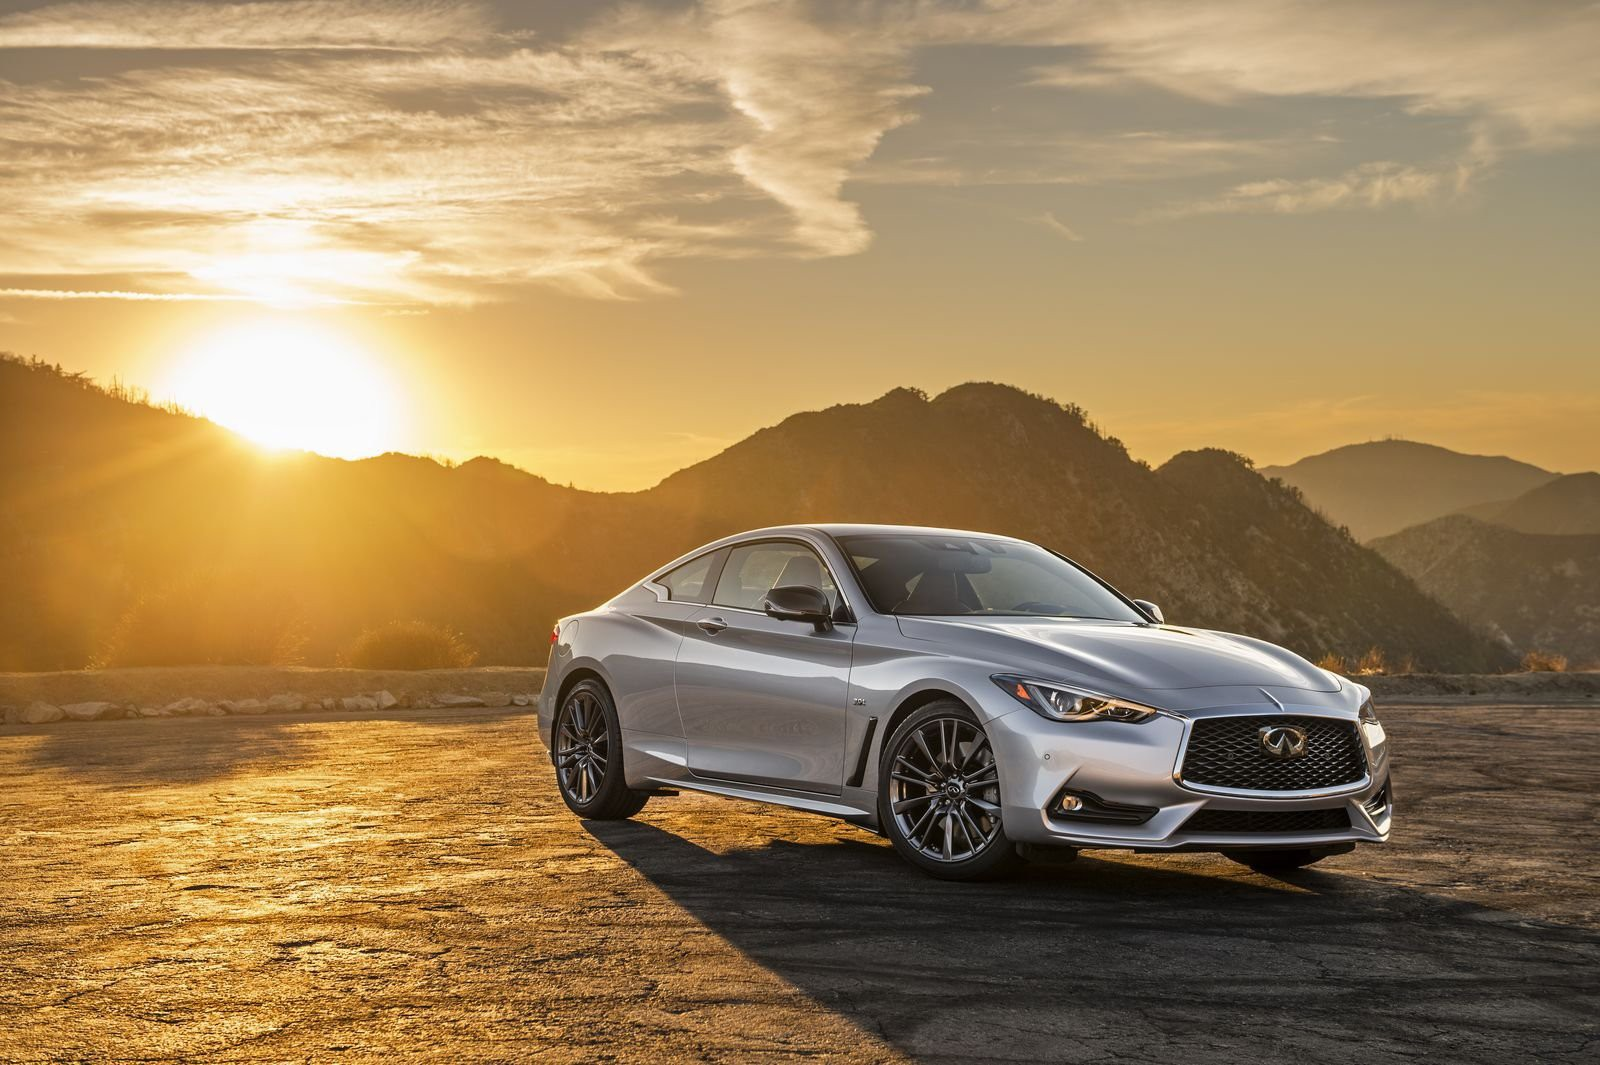 Download Infiniti Q60 30T HD Wallpaper